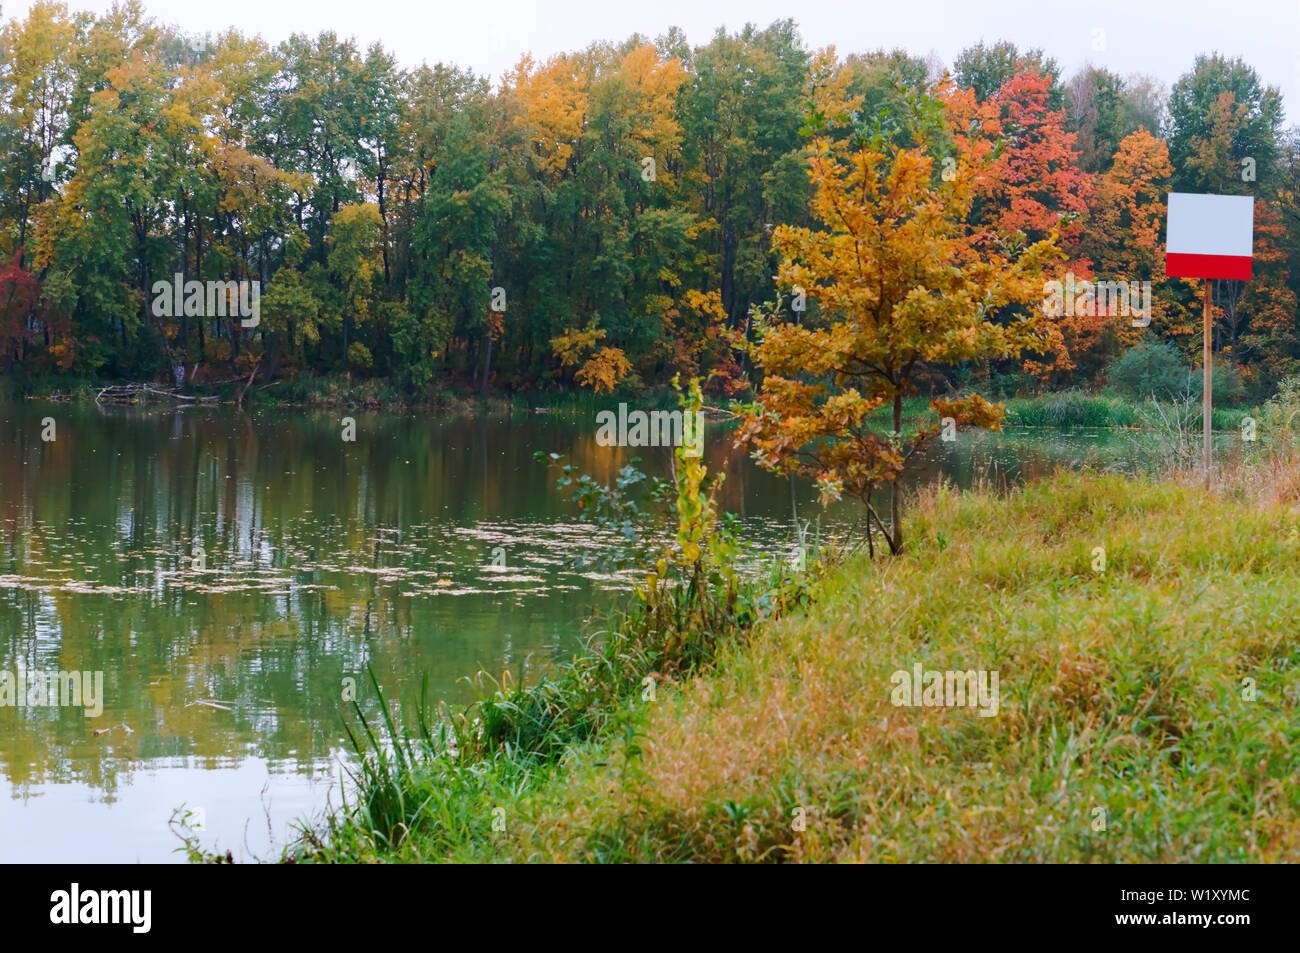 information plate on the lake, lake in the forest, autumn forest Stock Photo